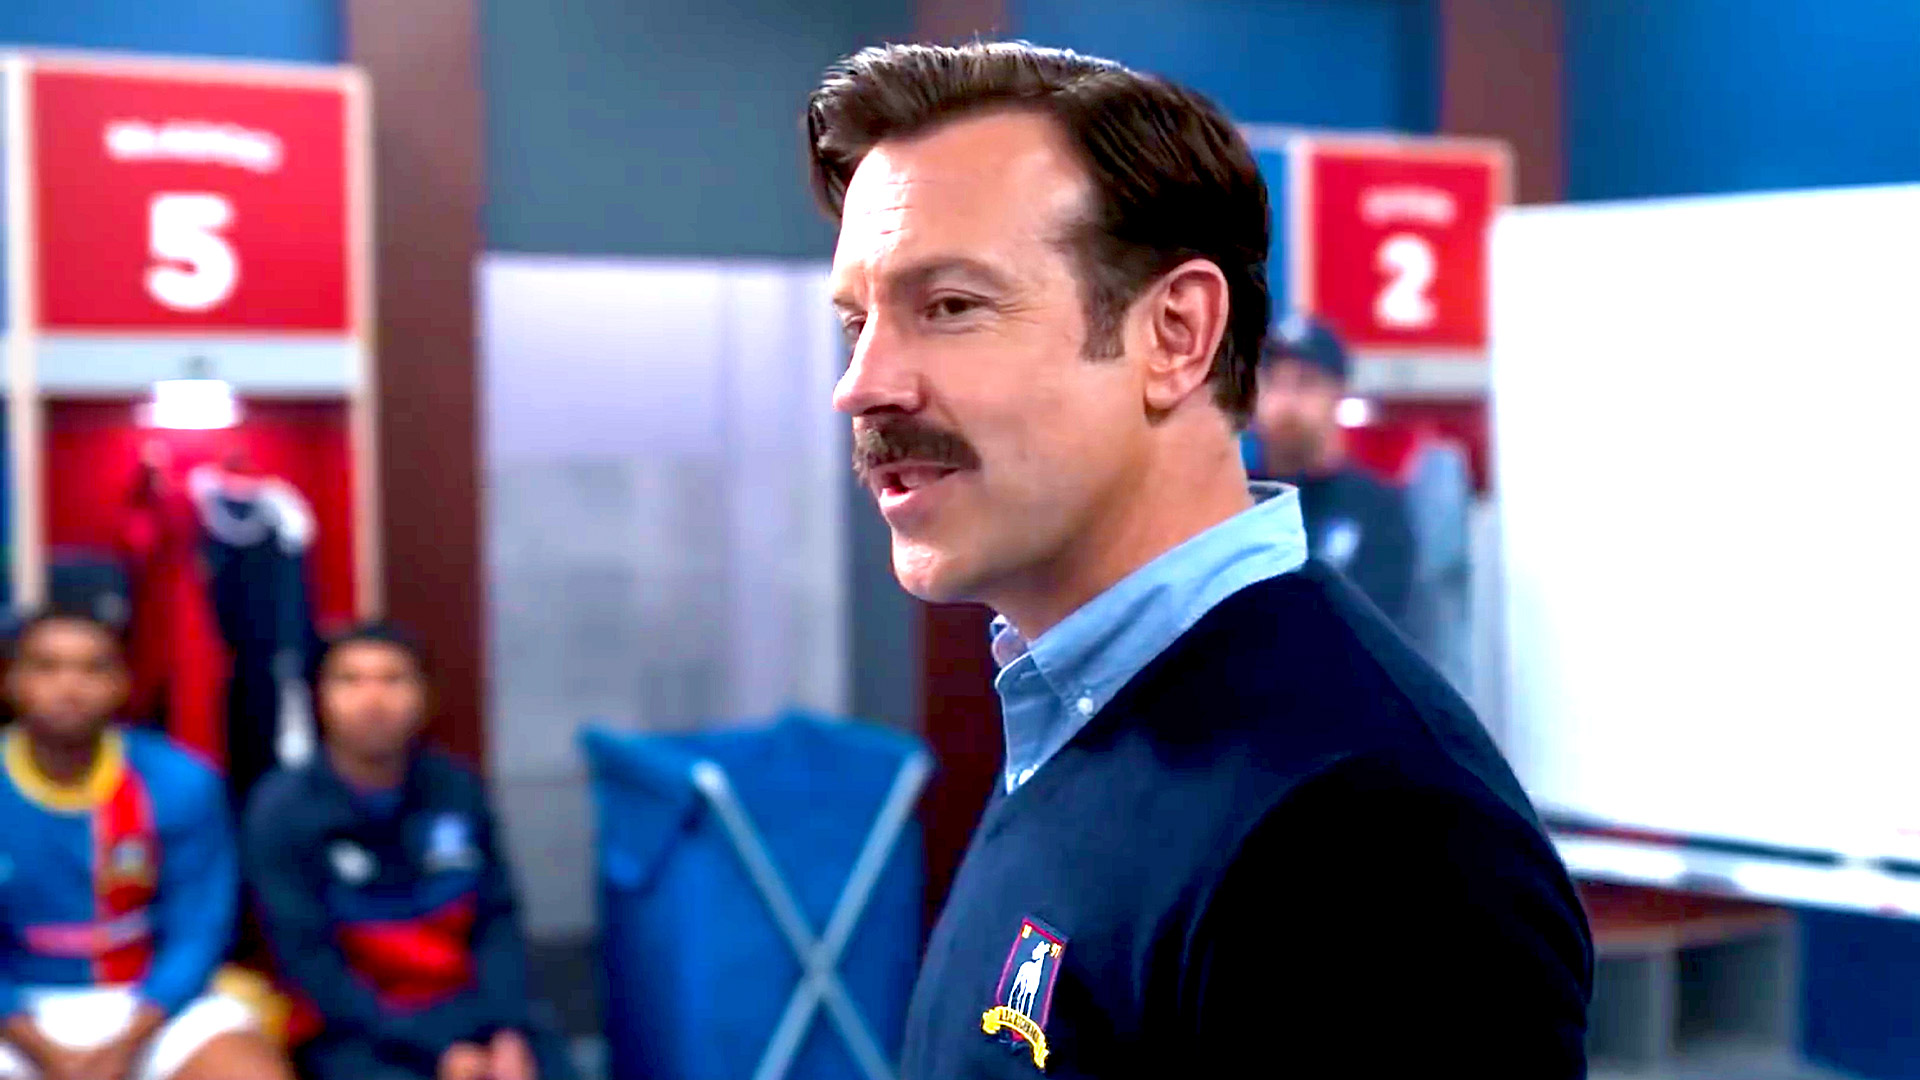 Ted Lasso on Apple TV+ - Official Trailer